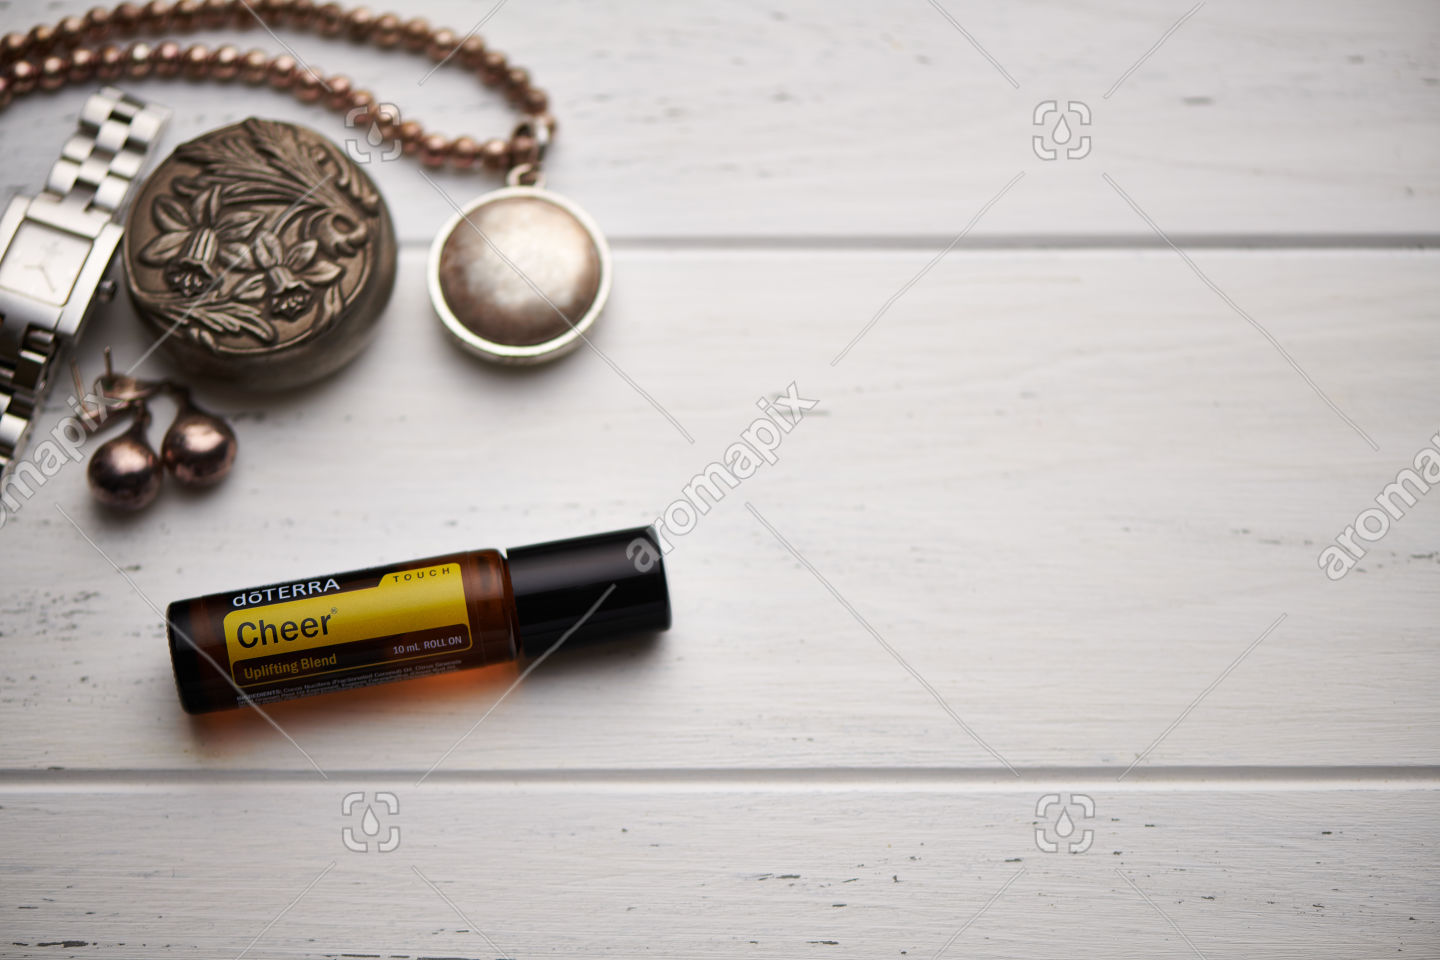 doTERRA Cheer Touch on rustic background